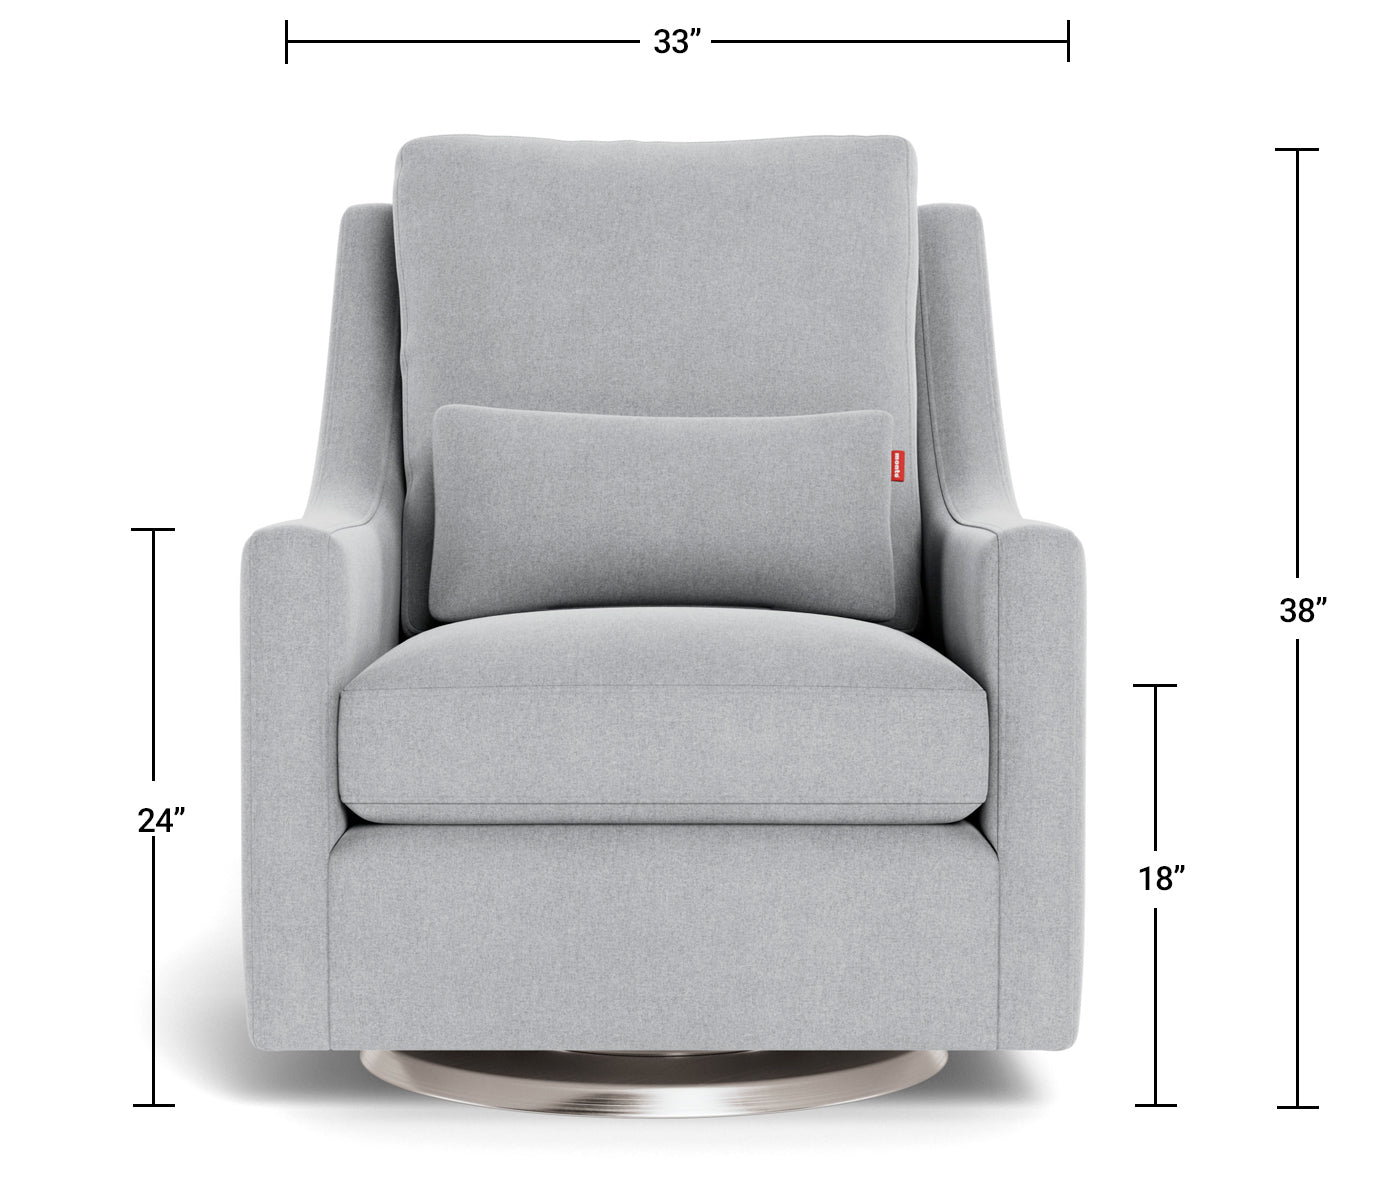 Modern Nursery Glider Chair - Vera Glider Chair Dimensions Front View